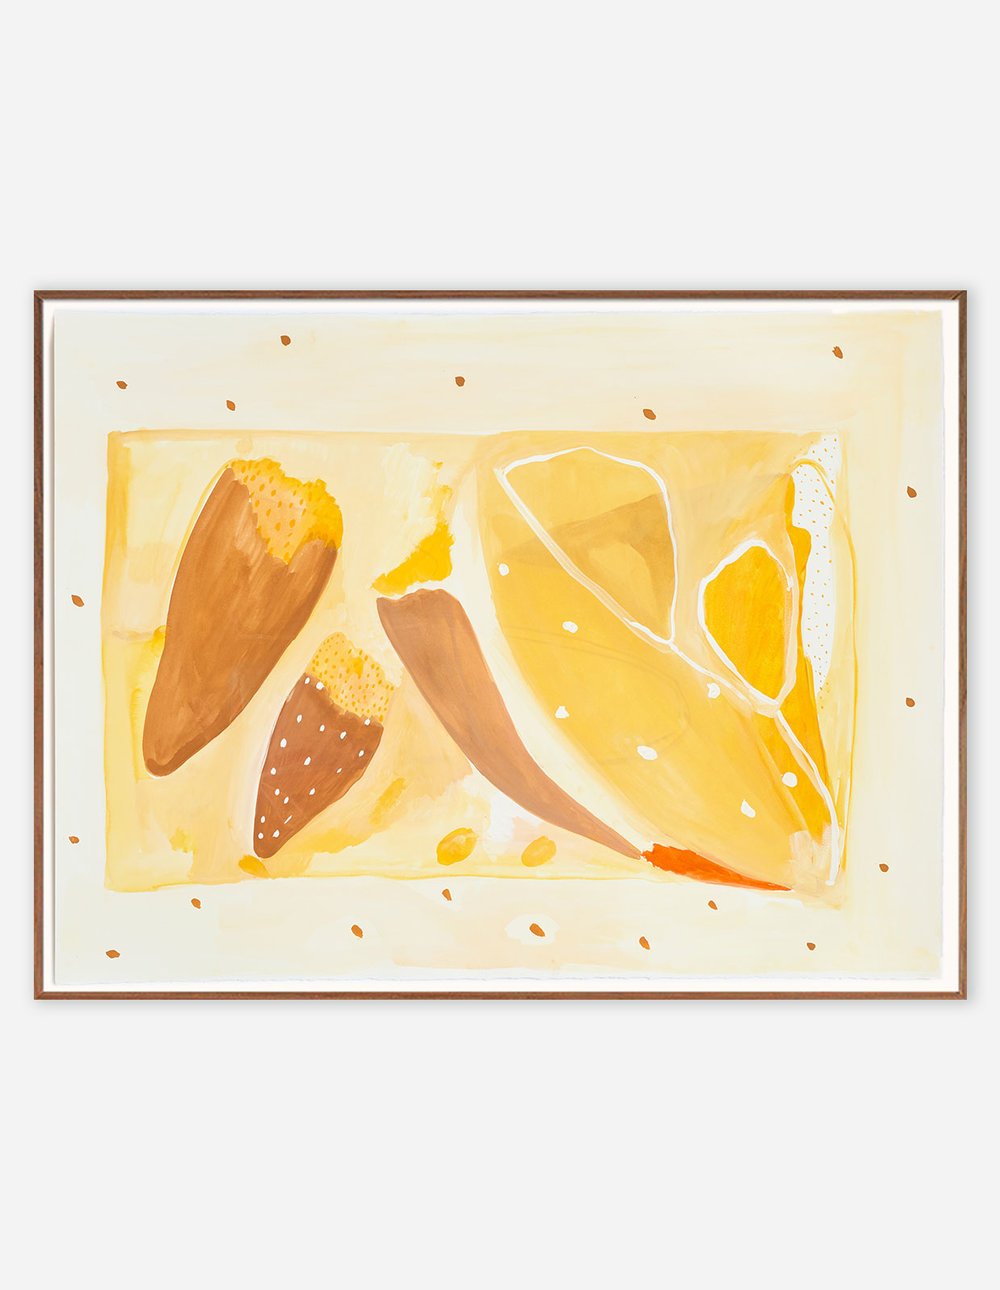 Daffodil, bankisa, home  1,100.00  58 cm x 76 cm Watercolour on archival cotton paper Timber and glass frame